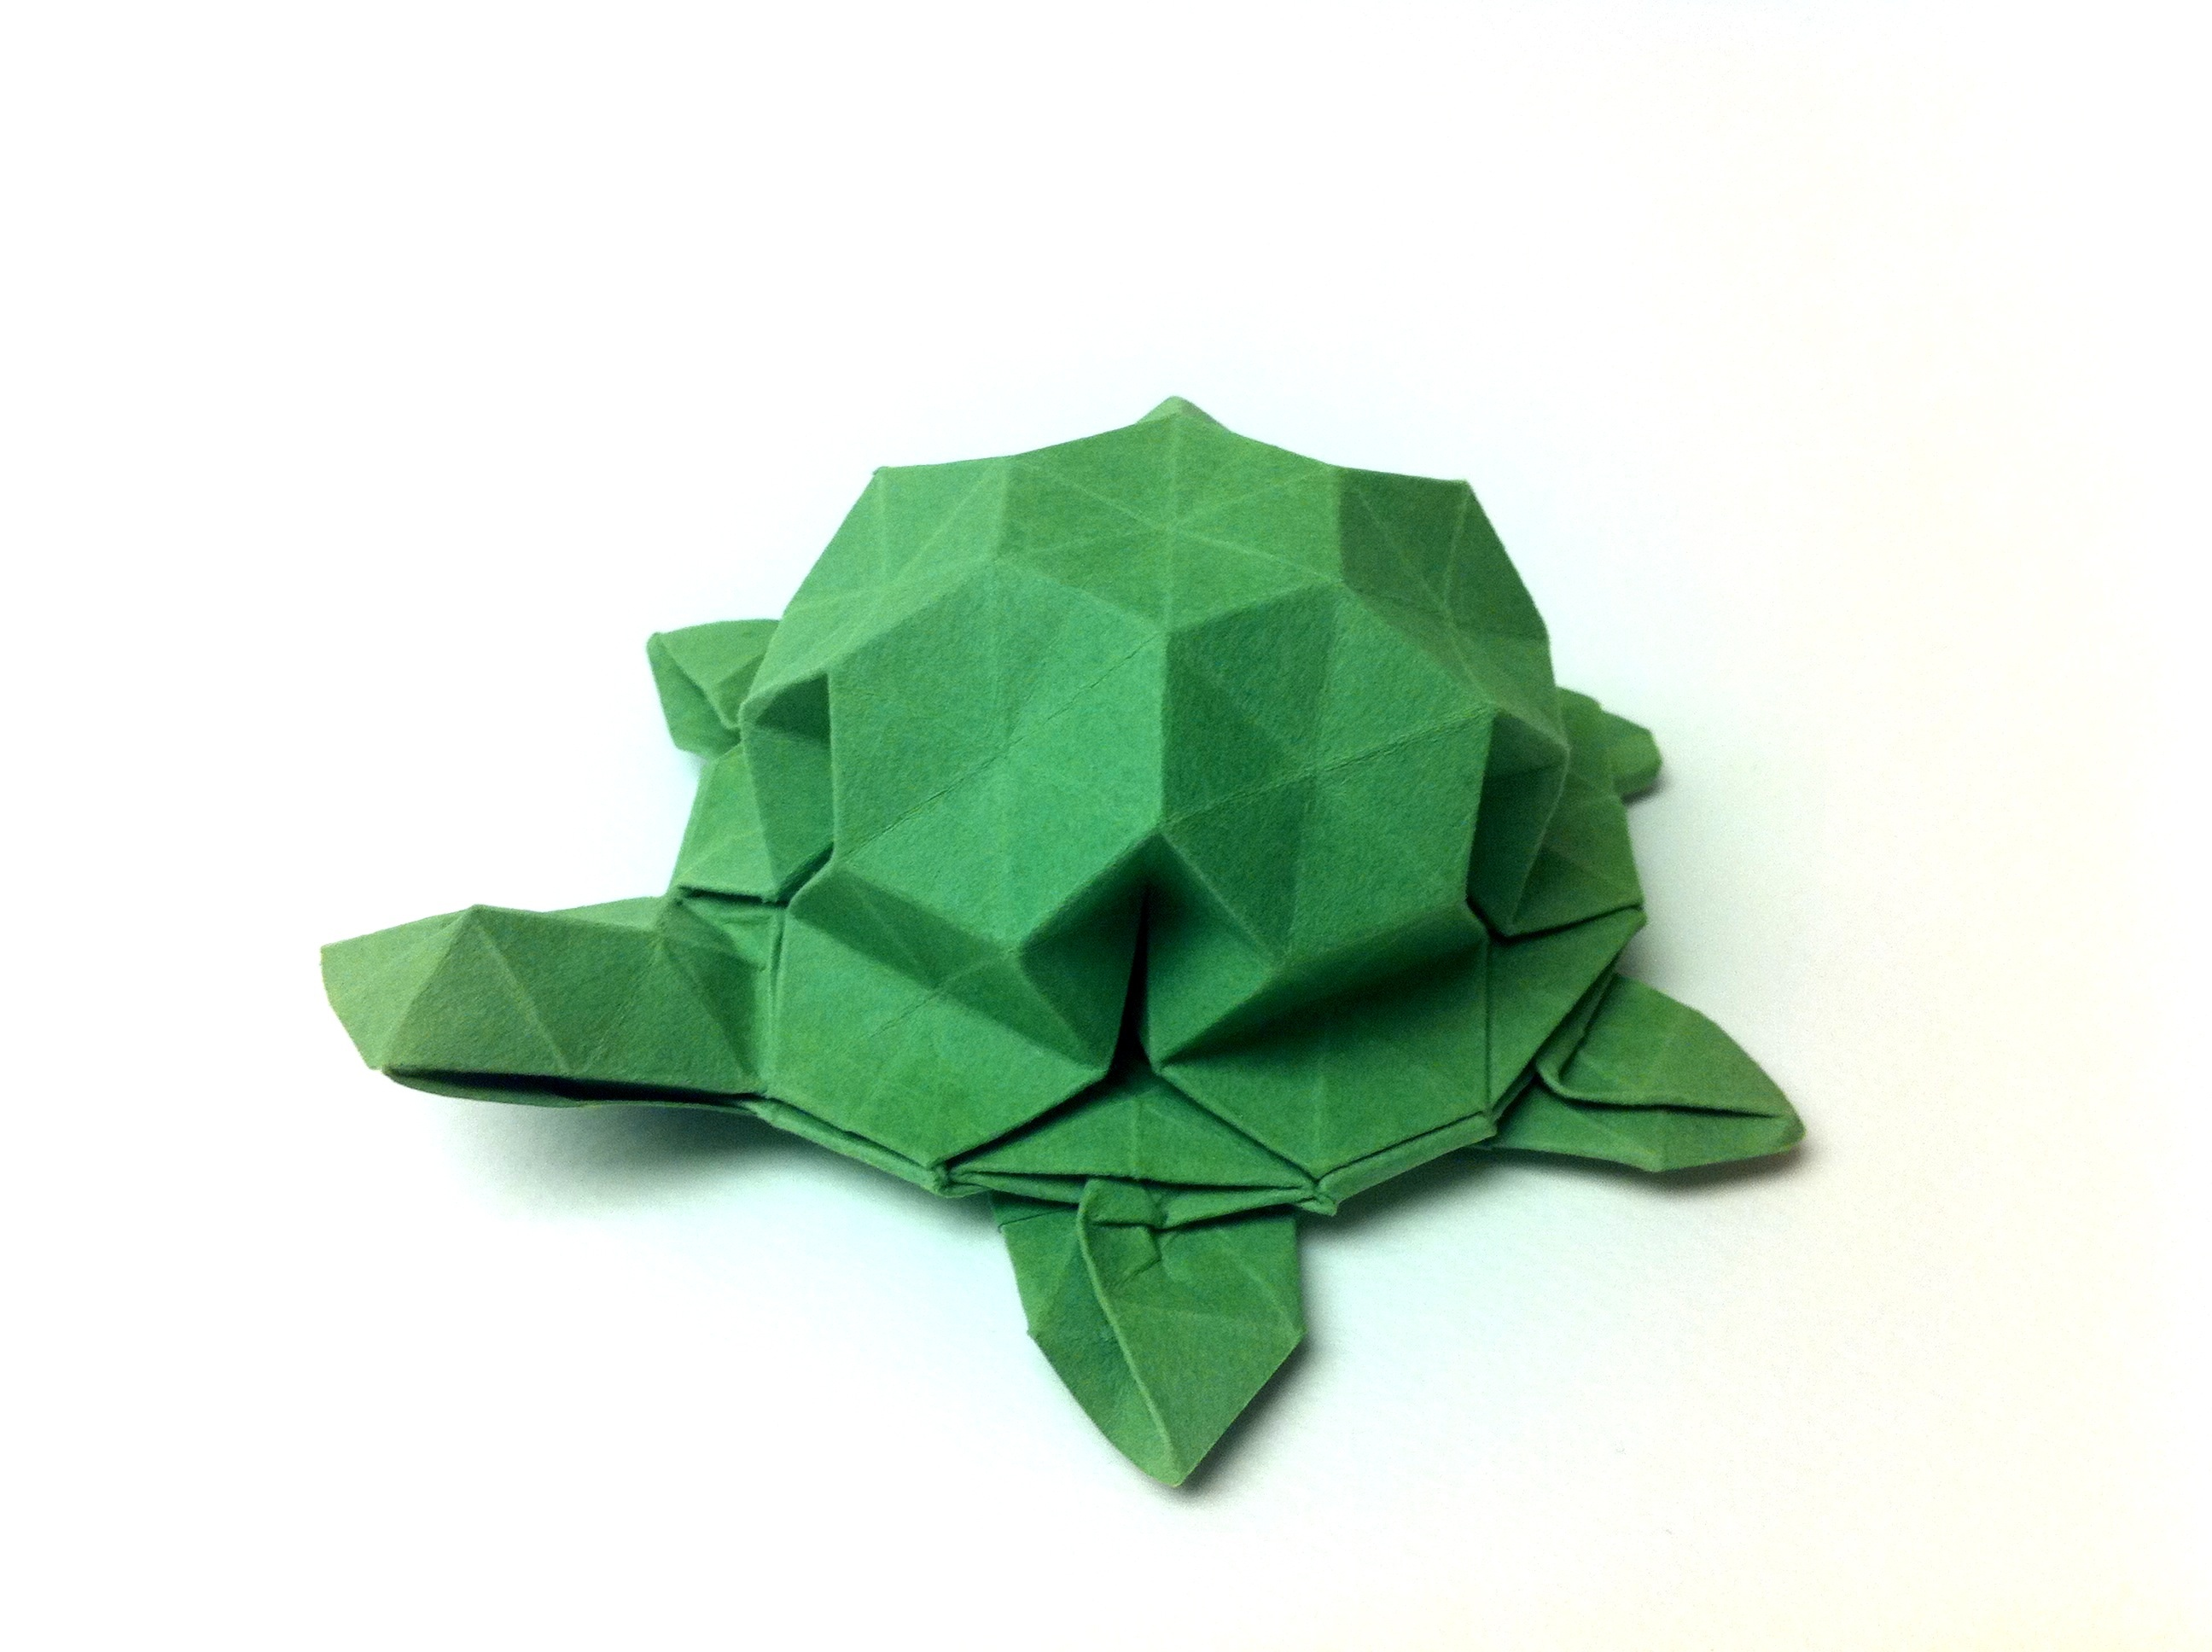 paper origami turtle diagram rainforest structure instructions